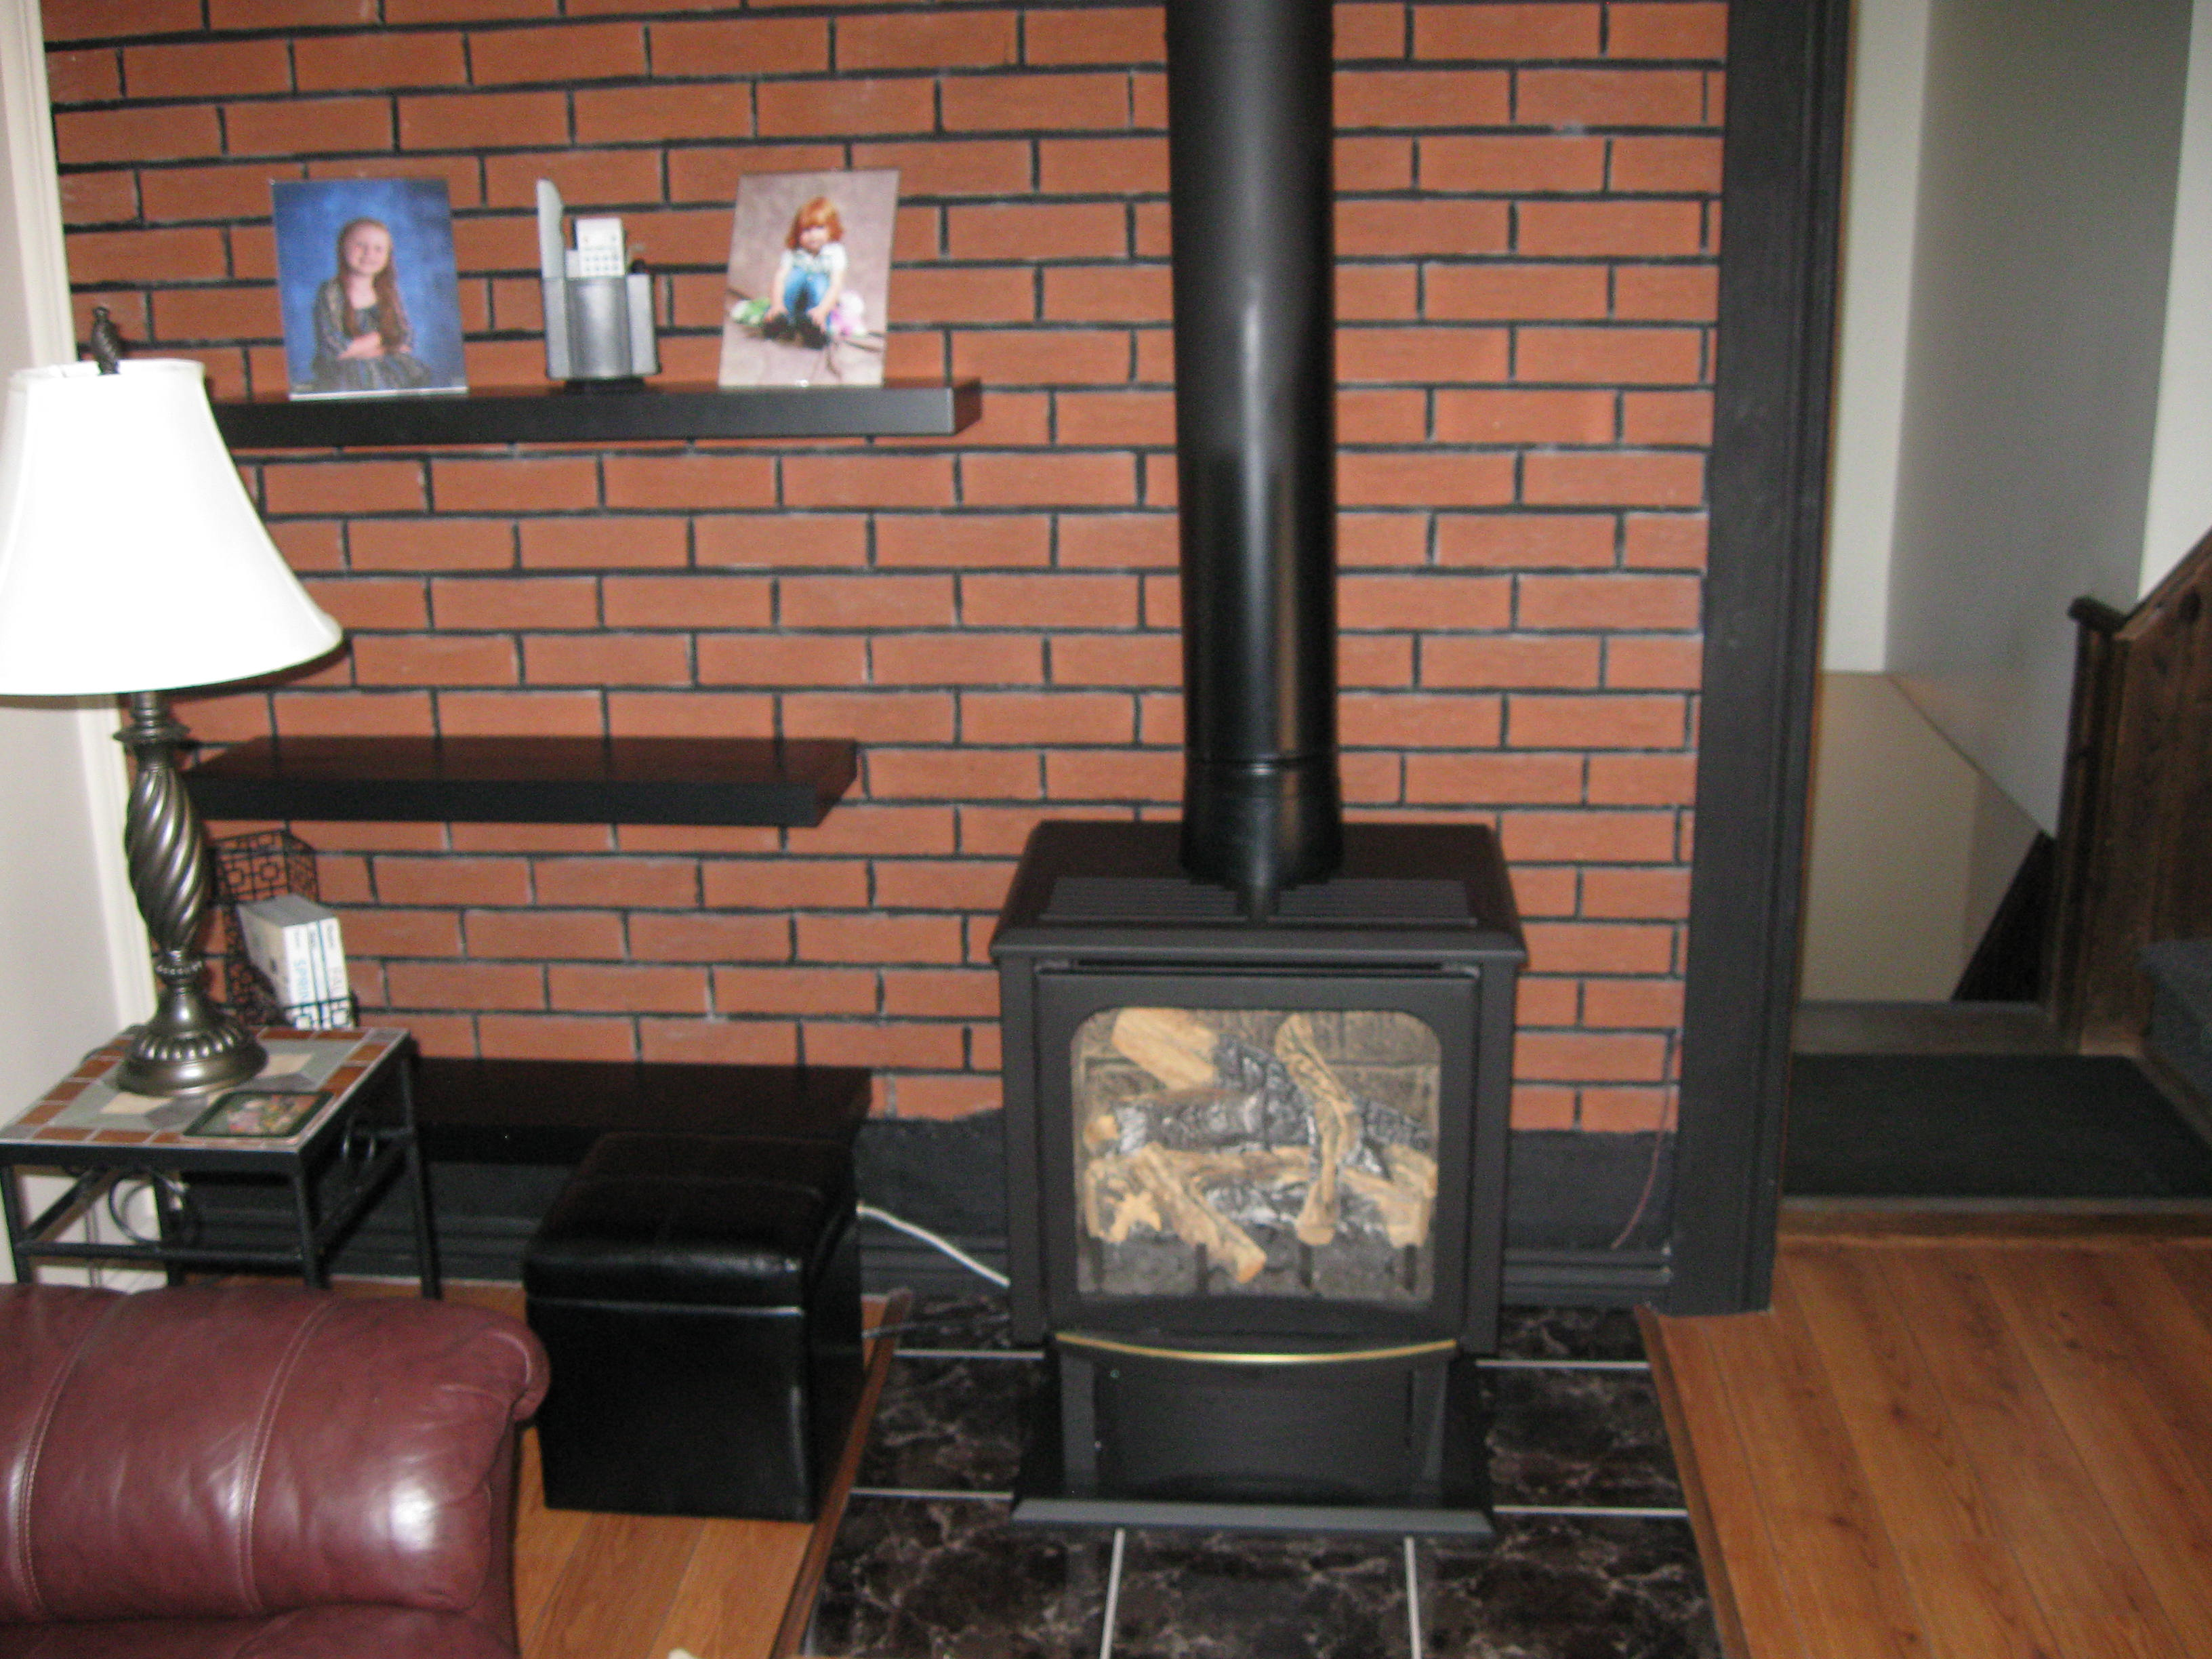 display jotul gf int gas fireplace usa stove hr bv sebago brm fireplaces